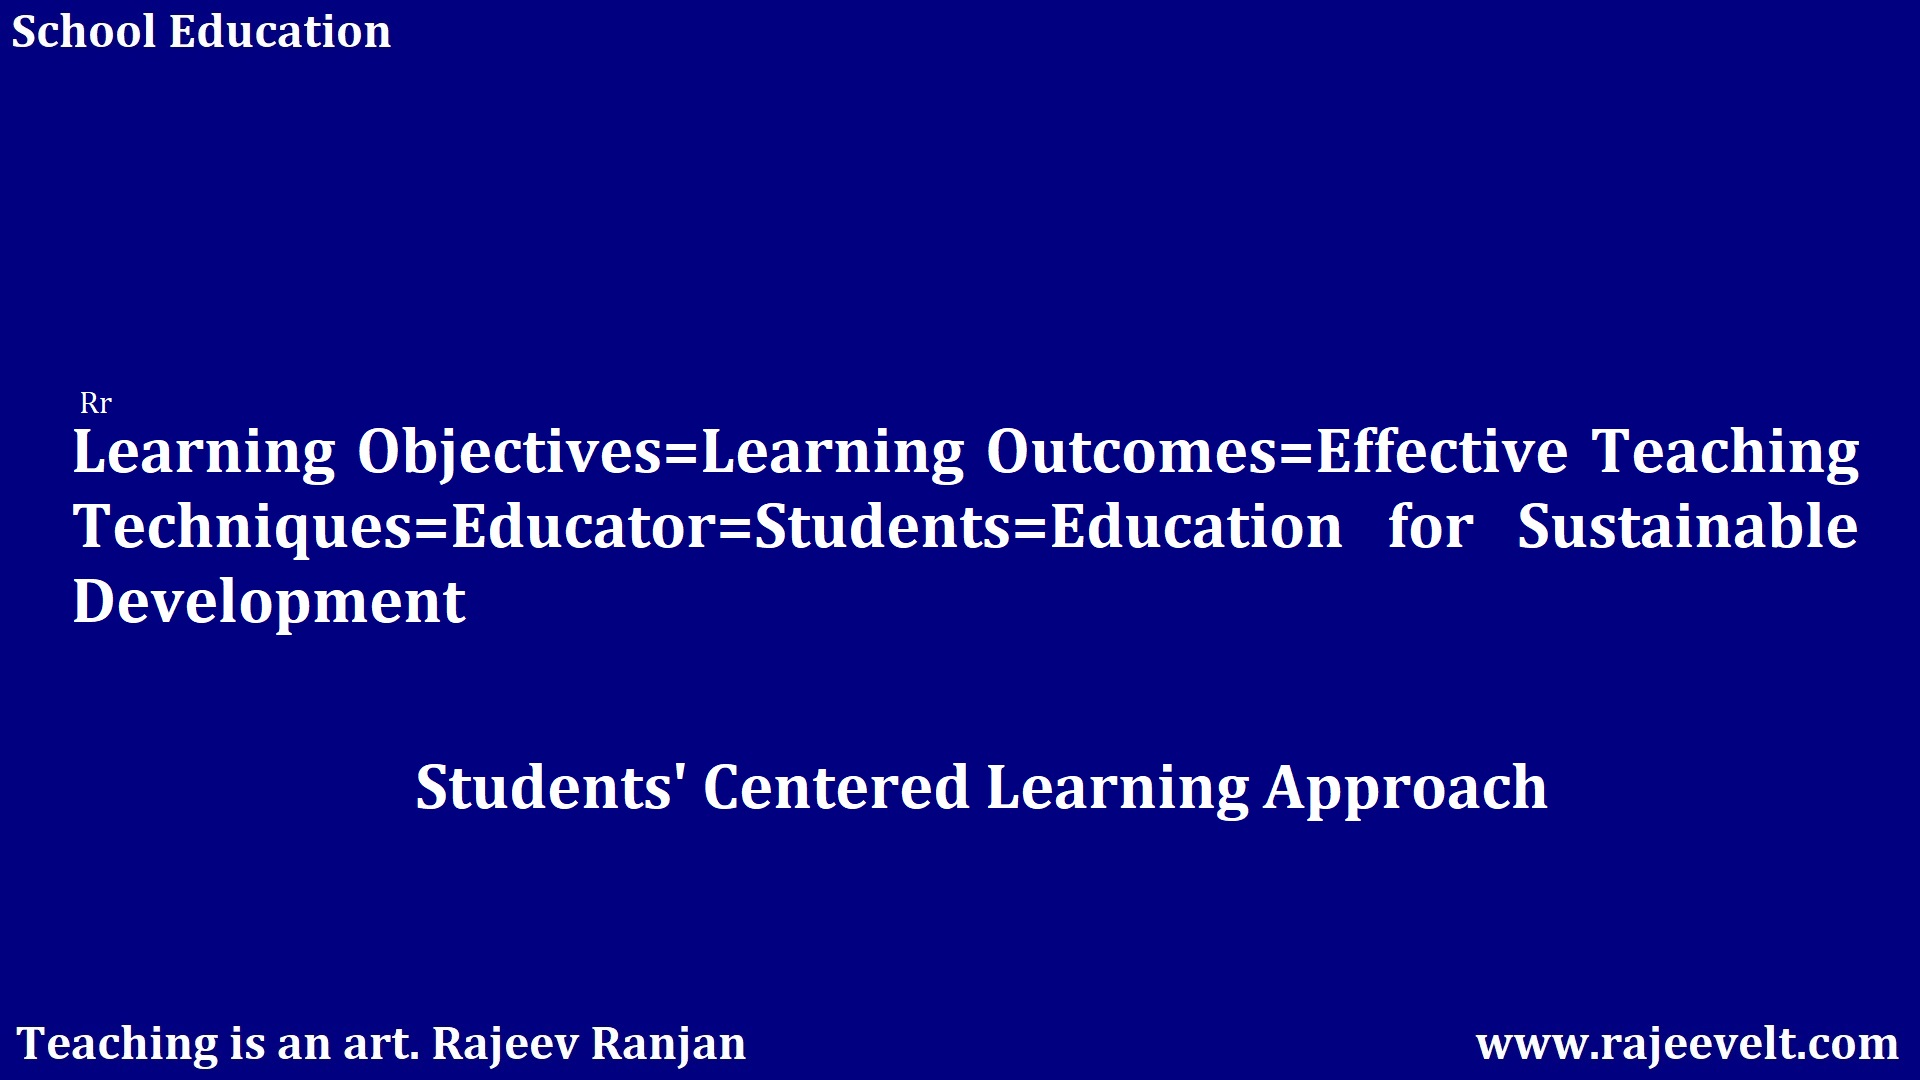 Students' Centered Learning Approach